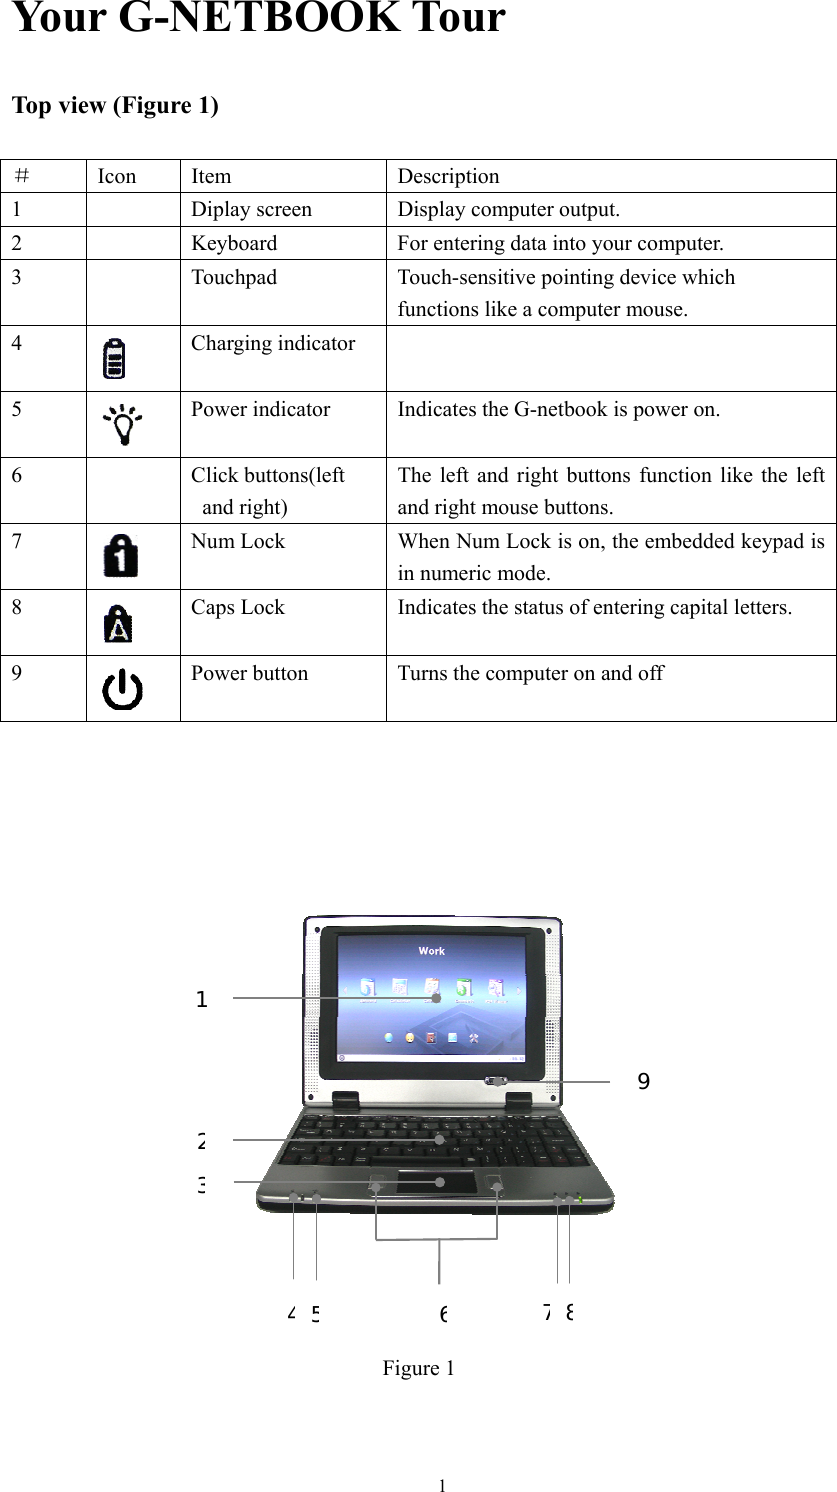 king yung electronics g7la g netbook user manual 1 product overview rh usermanual wiki nextbook user's guide netbook user manual android 4.2